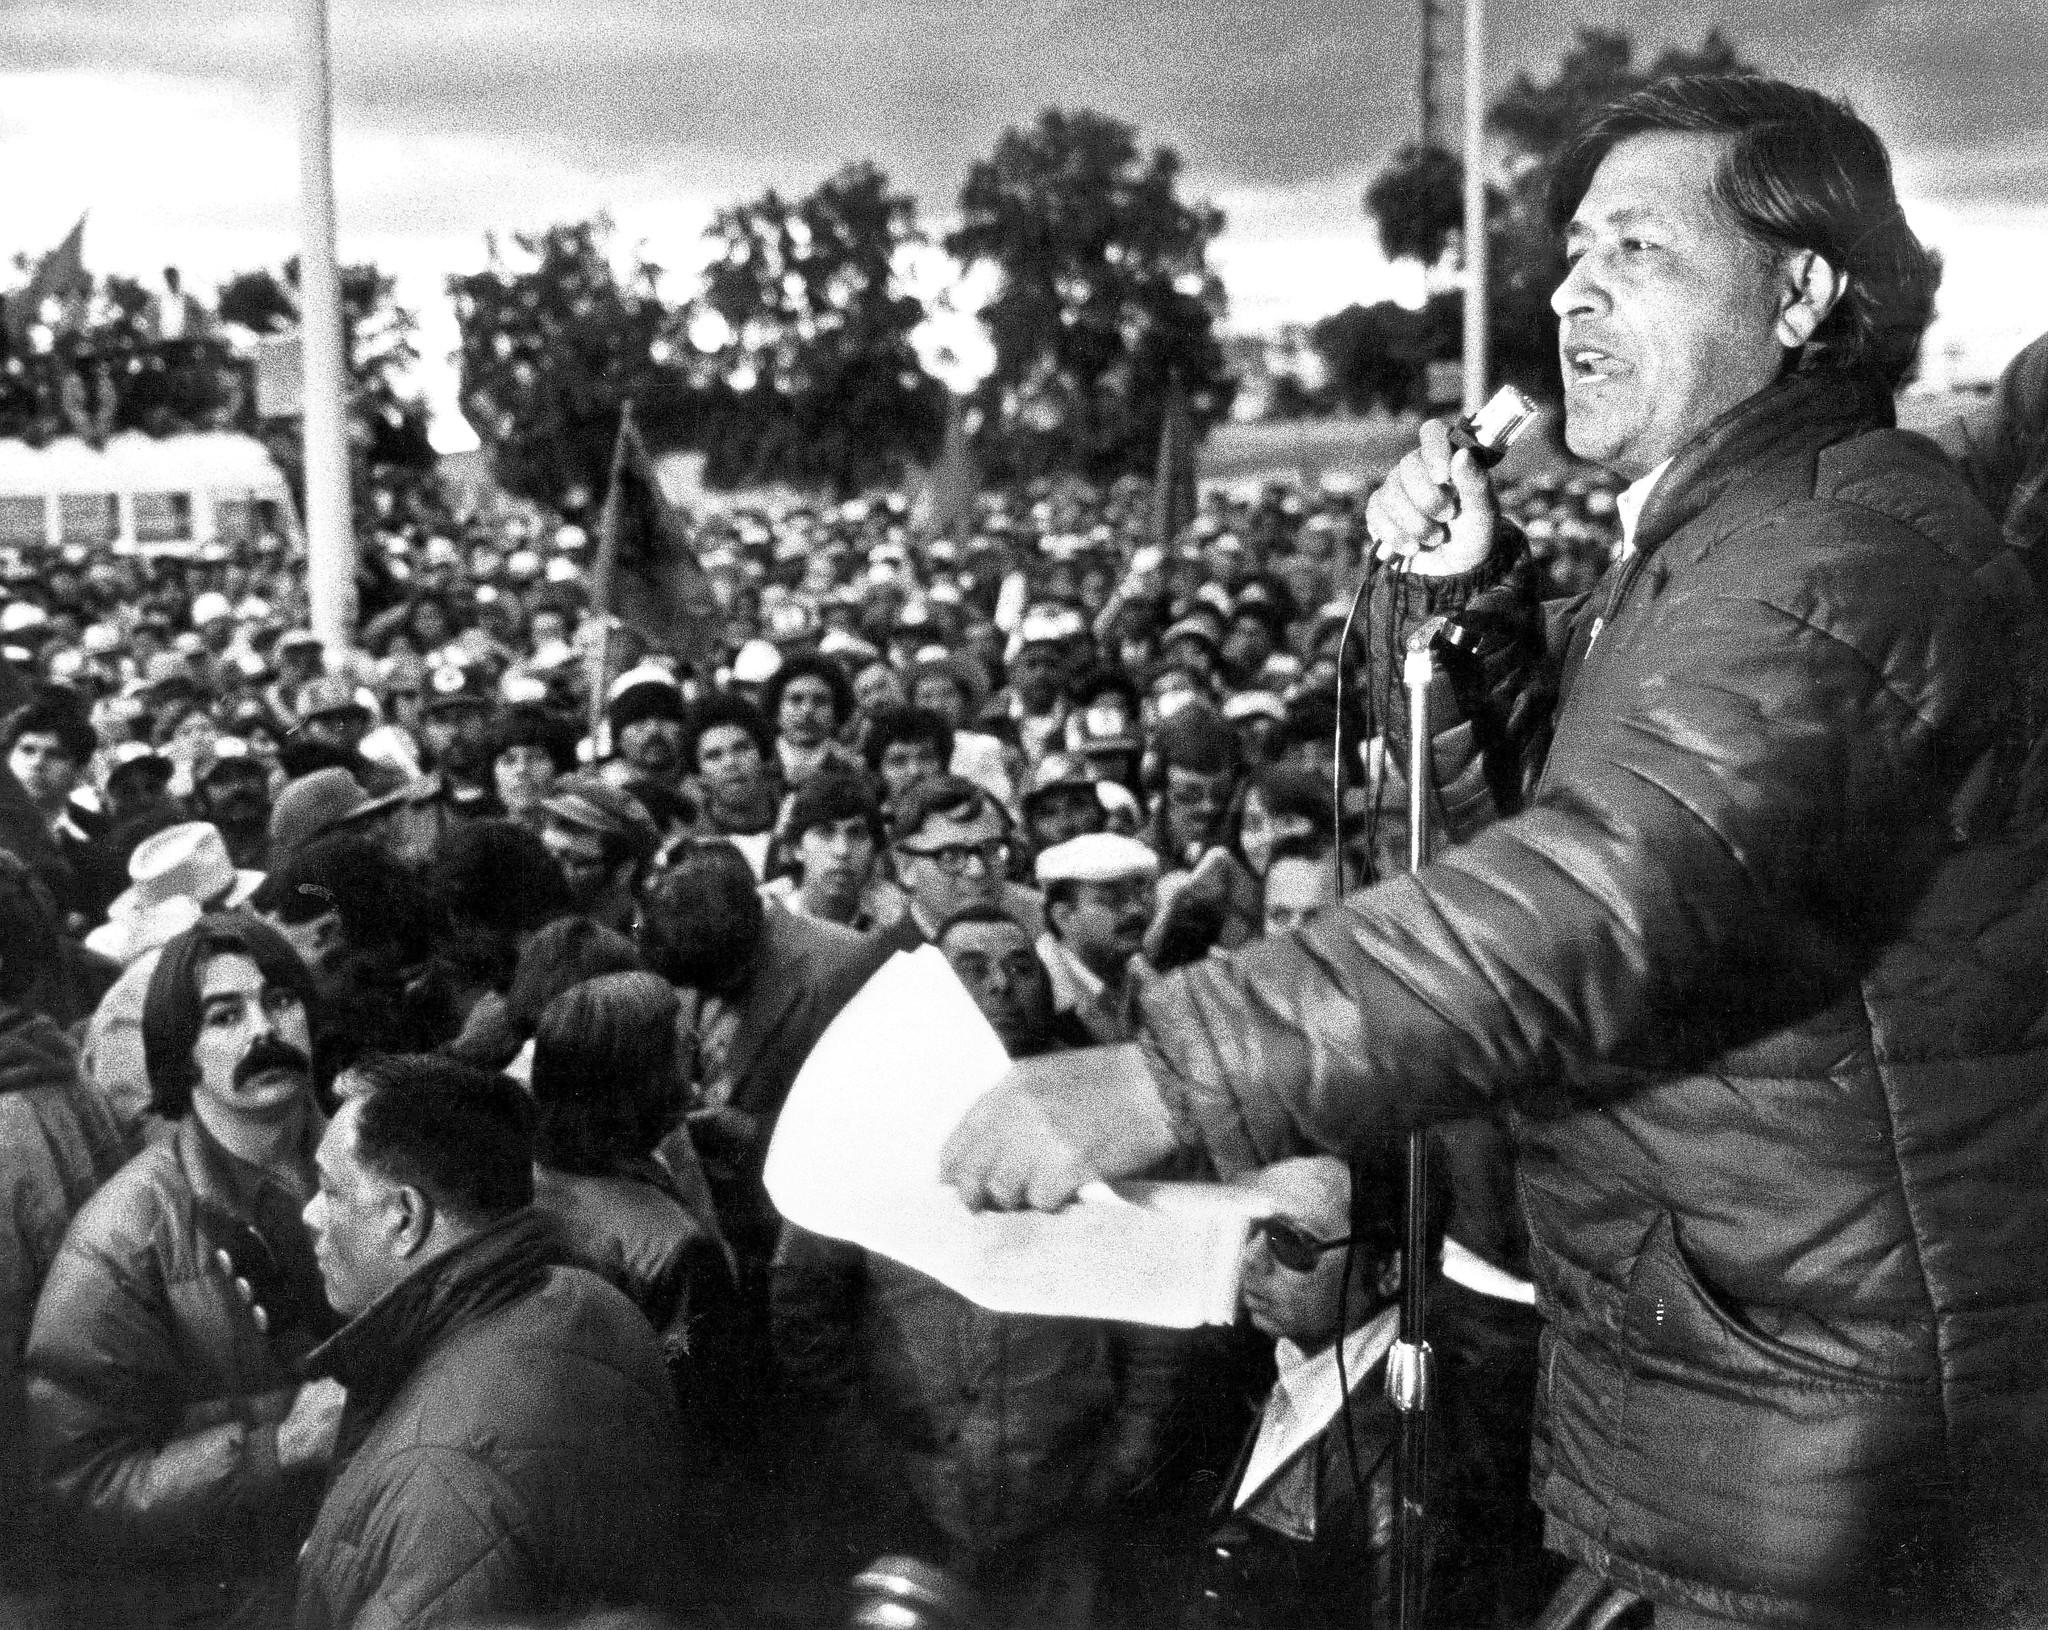 Cesar Chavez speaks to members of the United Farm Workers during a rally in California's Imperial Valley on Feb. 2, 1979.